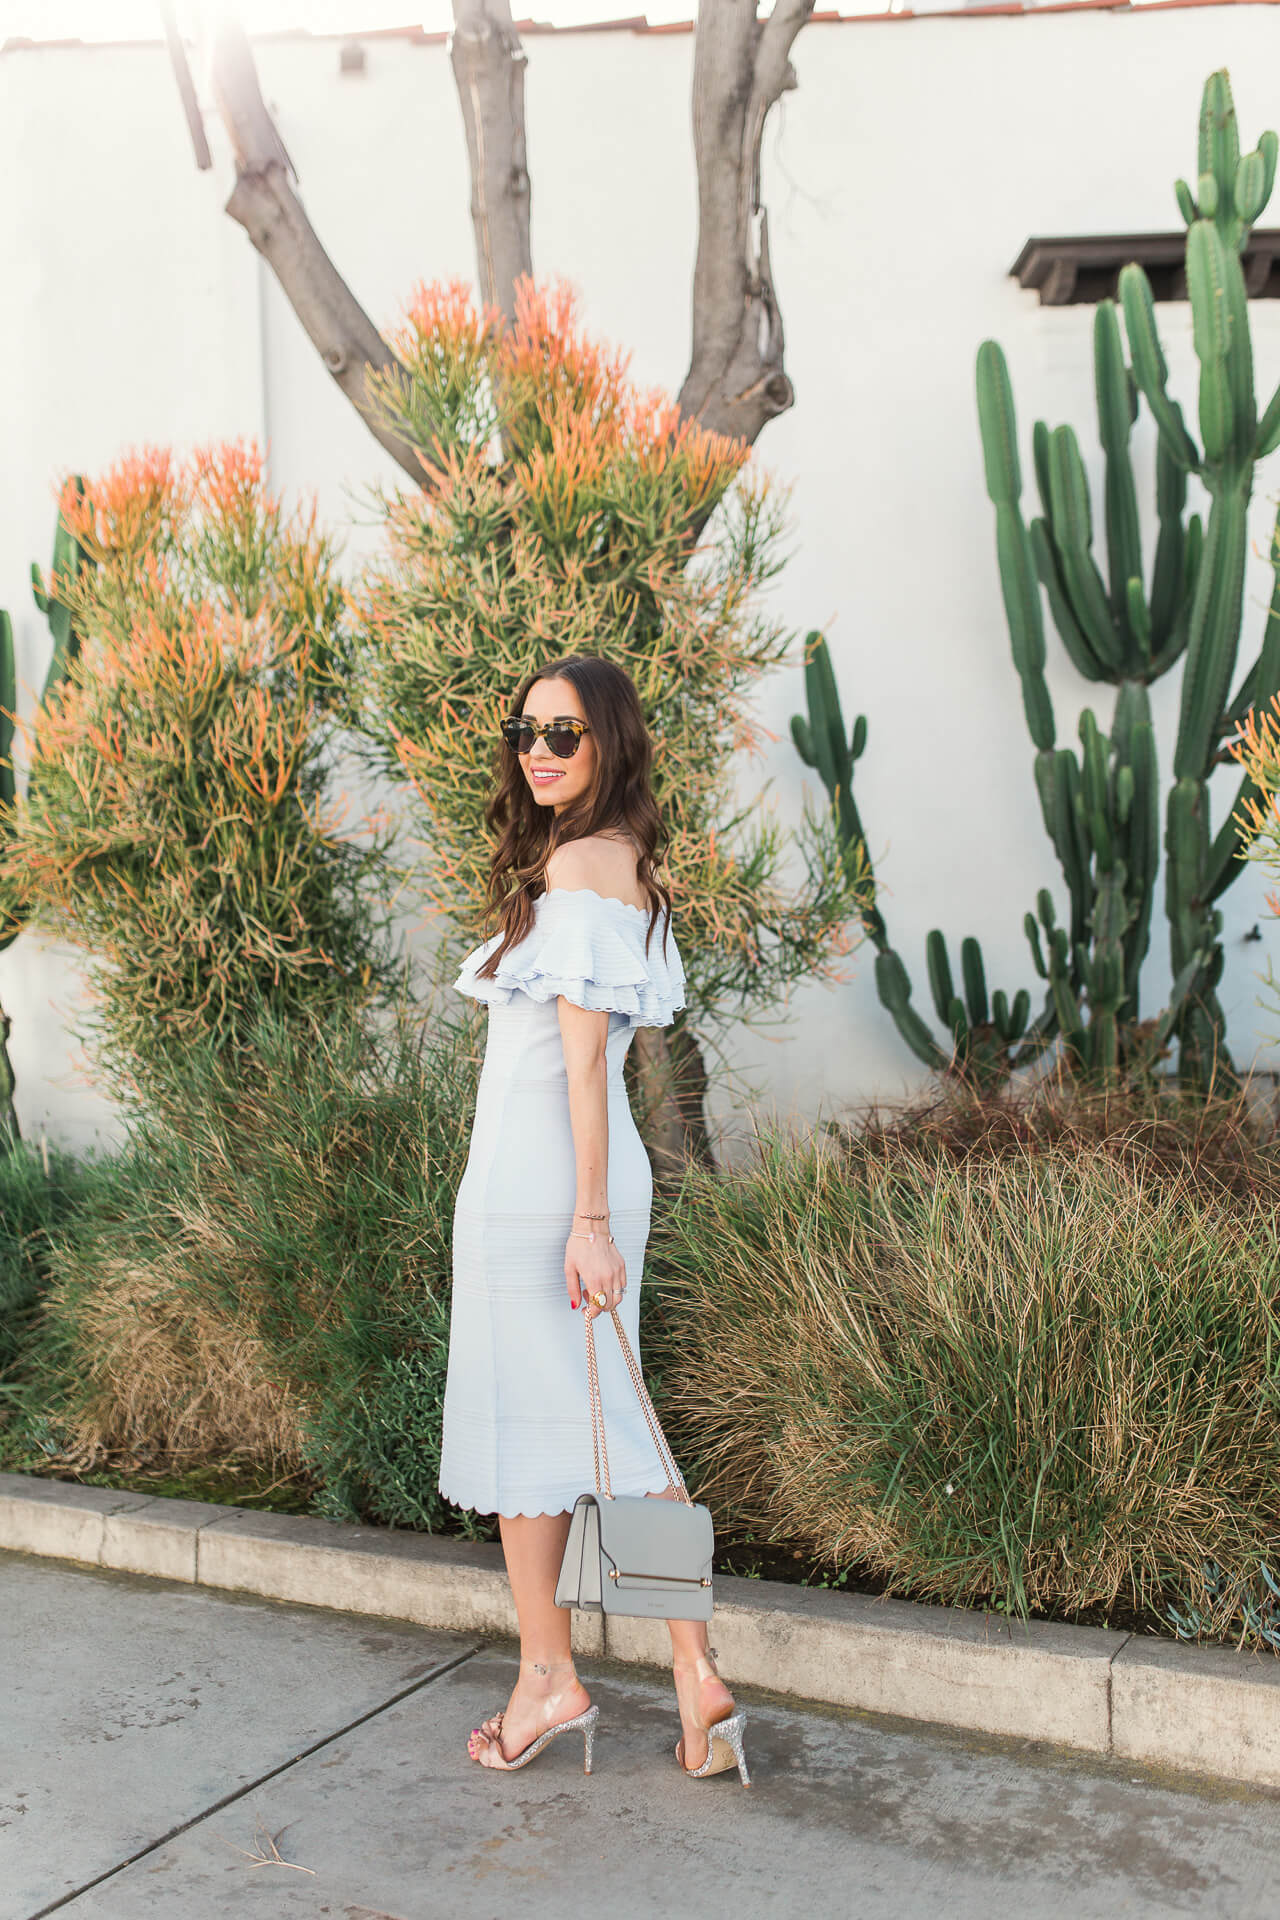 classic and sophisticated style inspiration from fashion blogger M Loves M @marmar